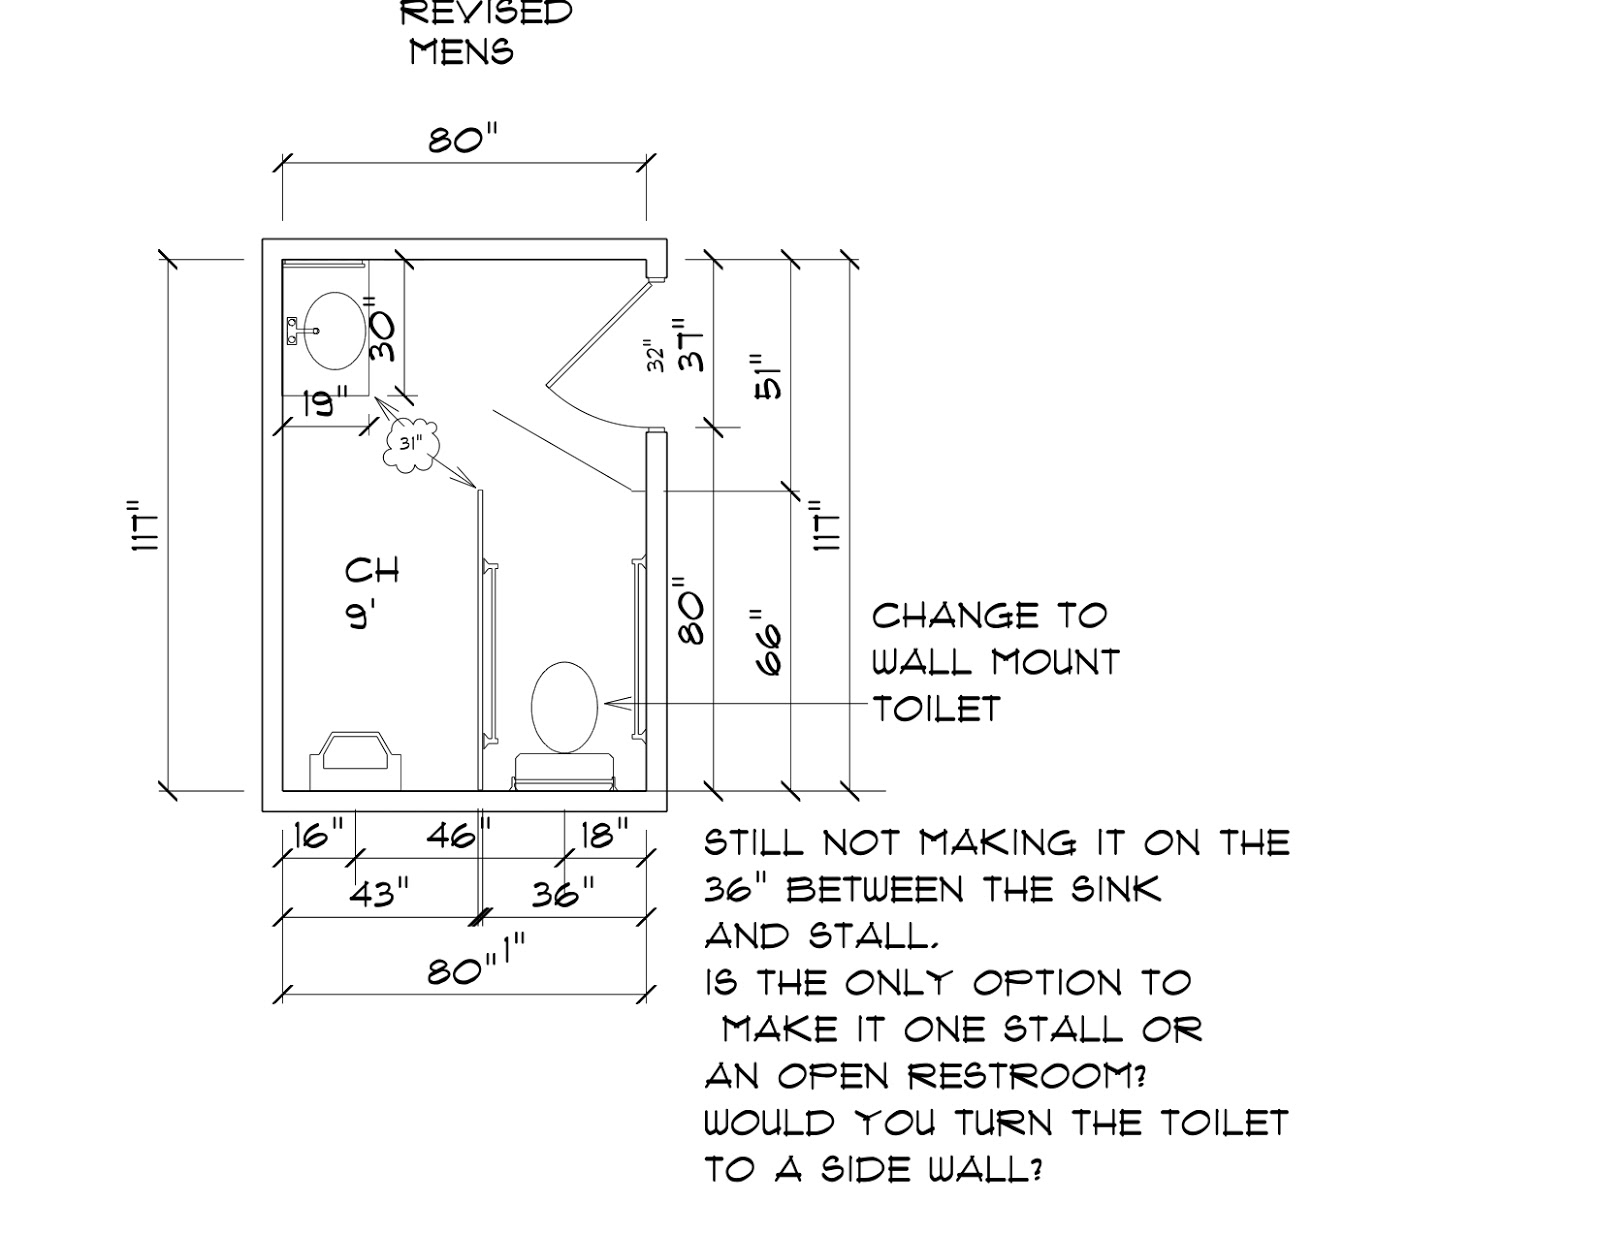 ADA: Redesigning a Public Men's Bathroom based on ADA ...